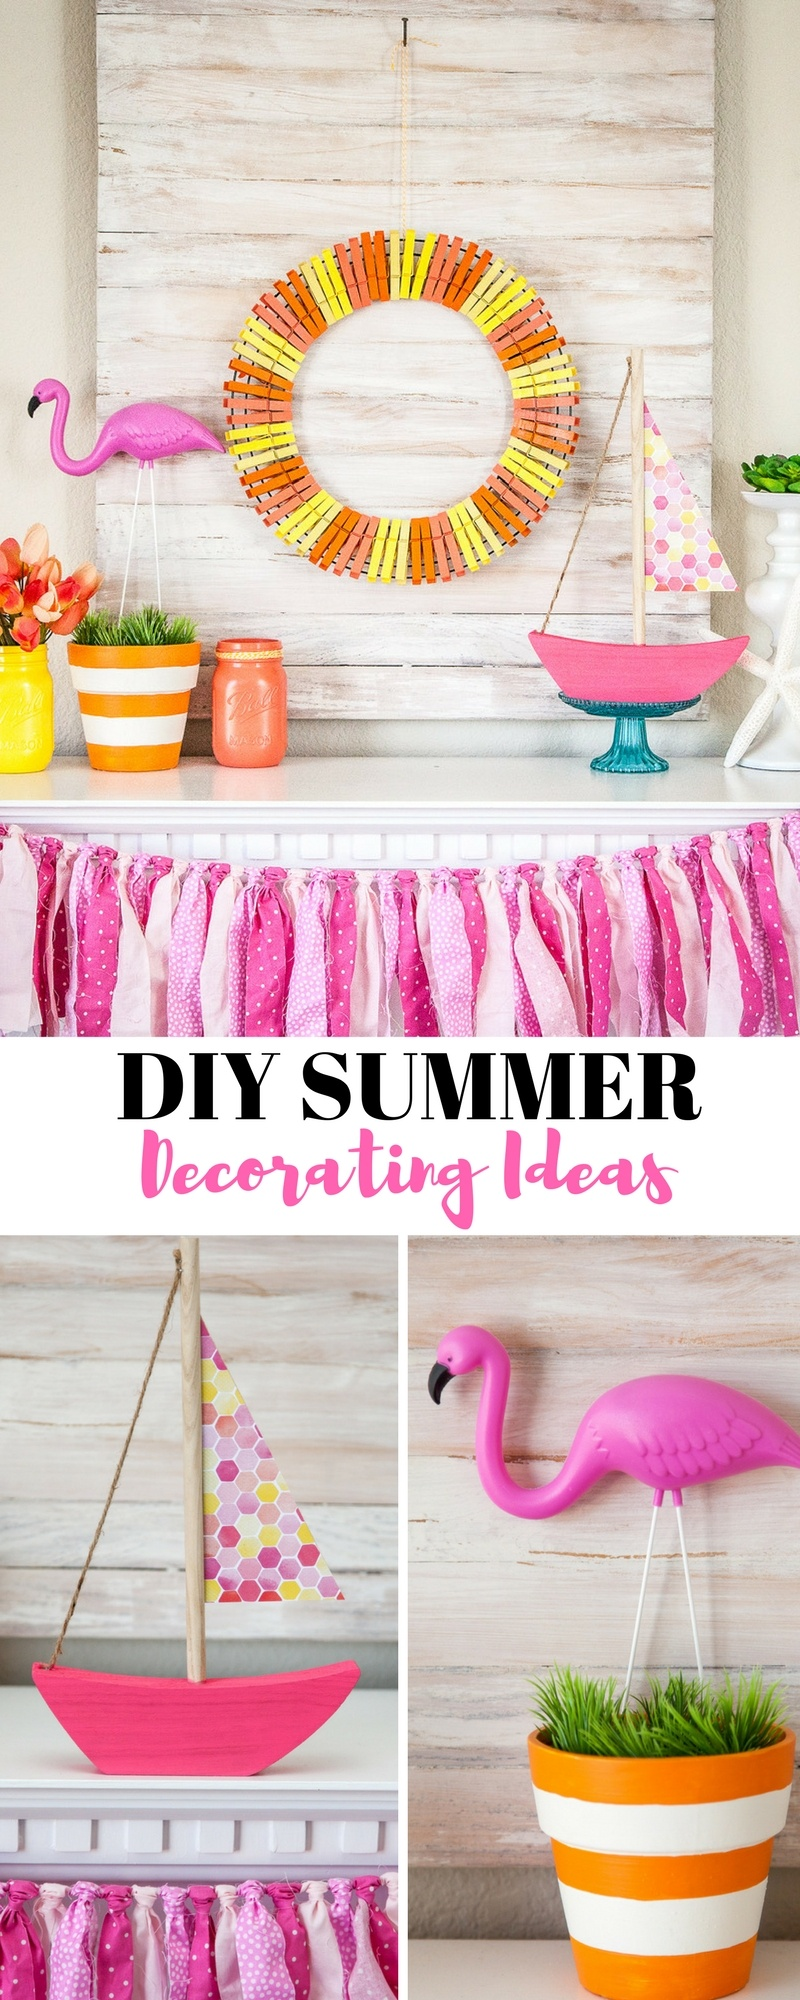 DIY Summer Decorating Ideas by Destro Photography on Love the Day